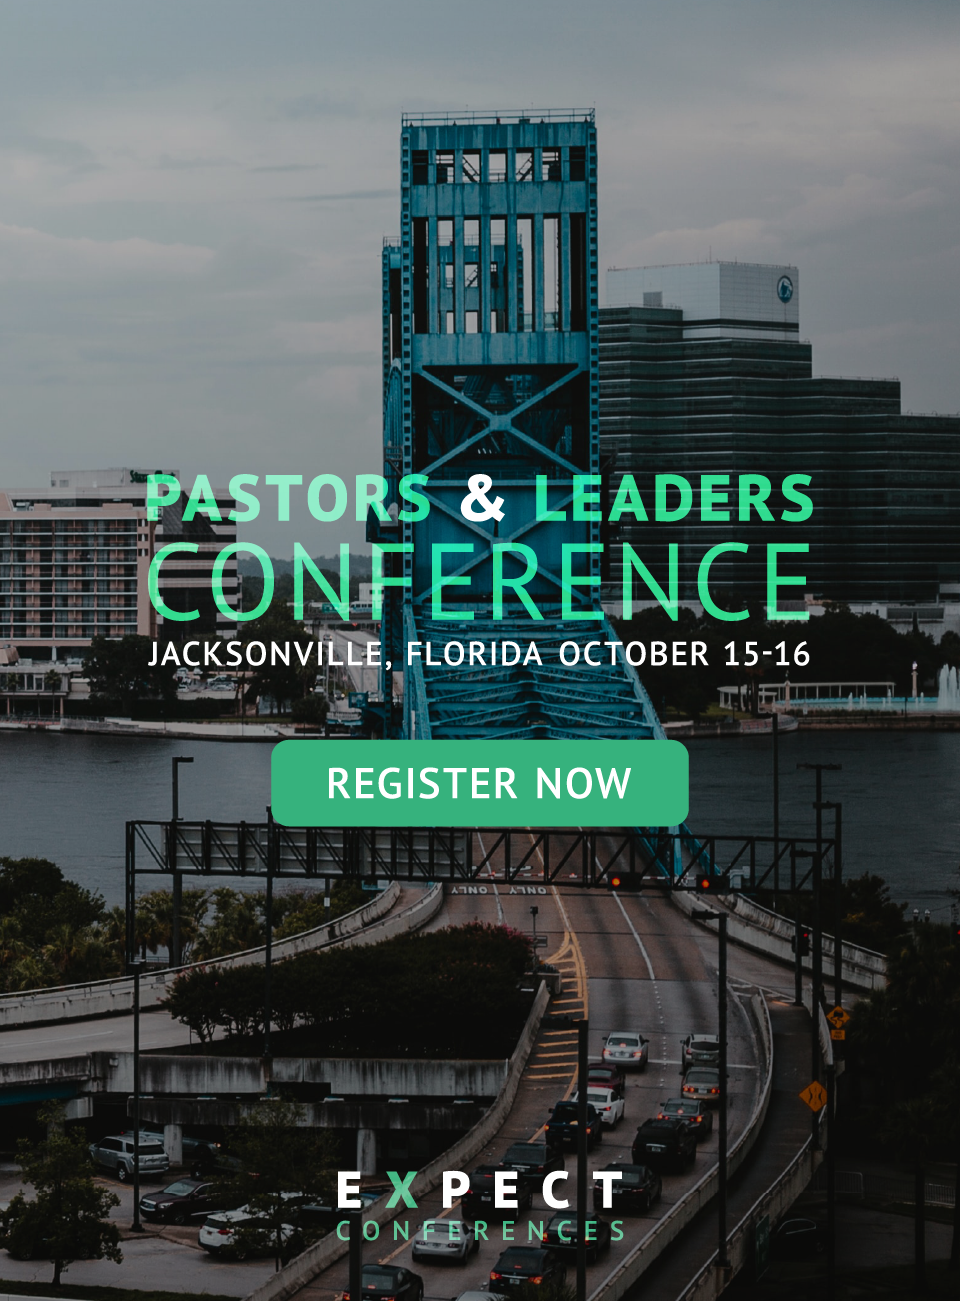 PASTORS & LEADERS CONFERENCE - Jacksonville, Florida October 15-16